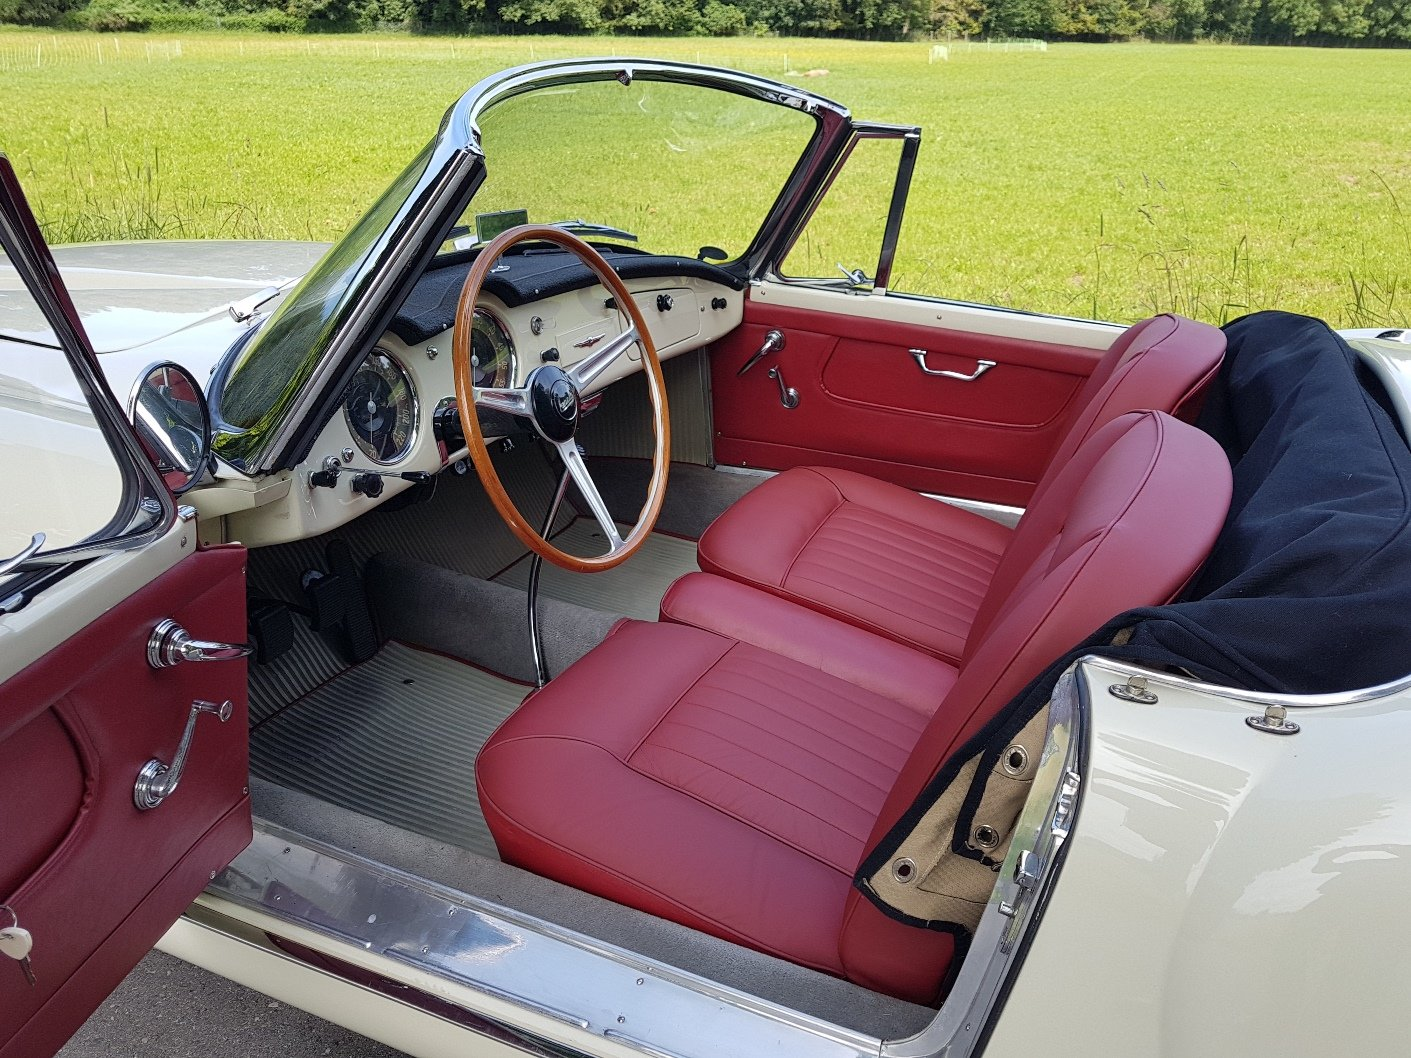 1957 Lancia Aurelia B24 S Convertibile, matching numbers/colours For Sale (picture 3 of 6)